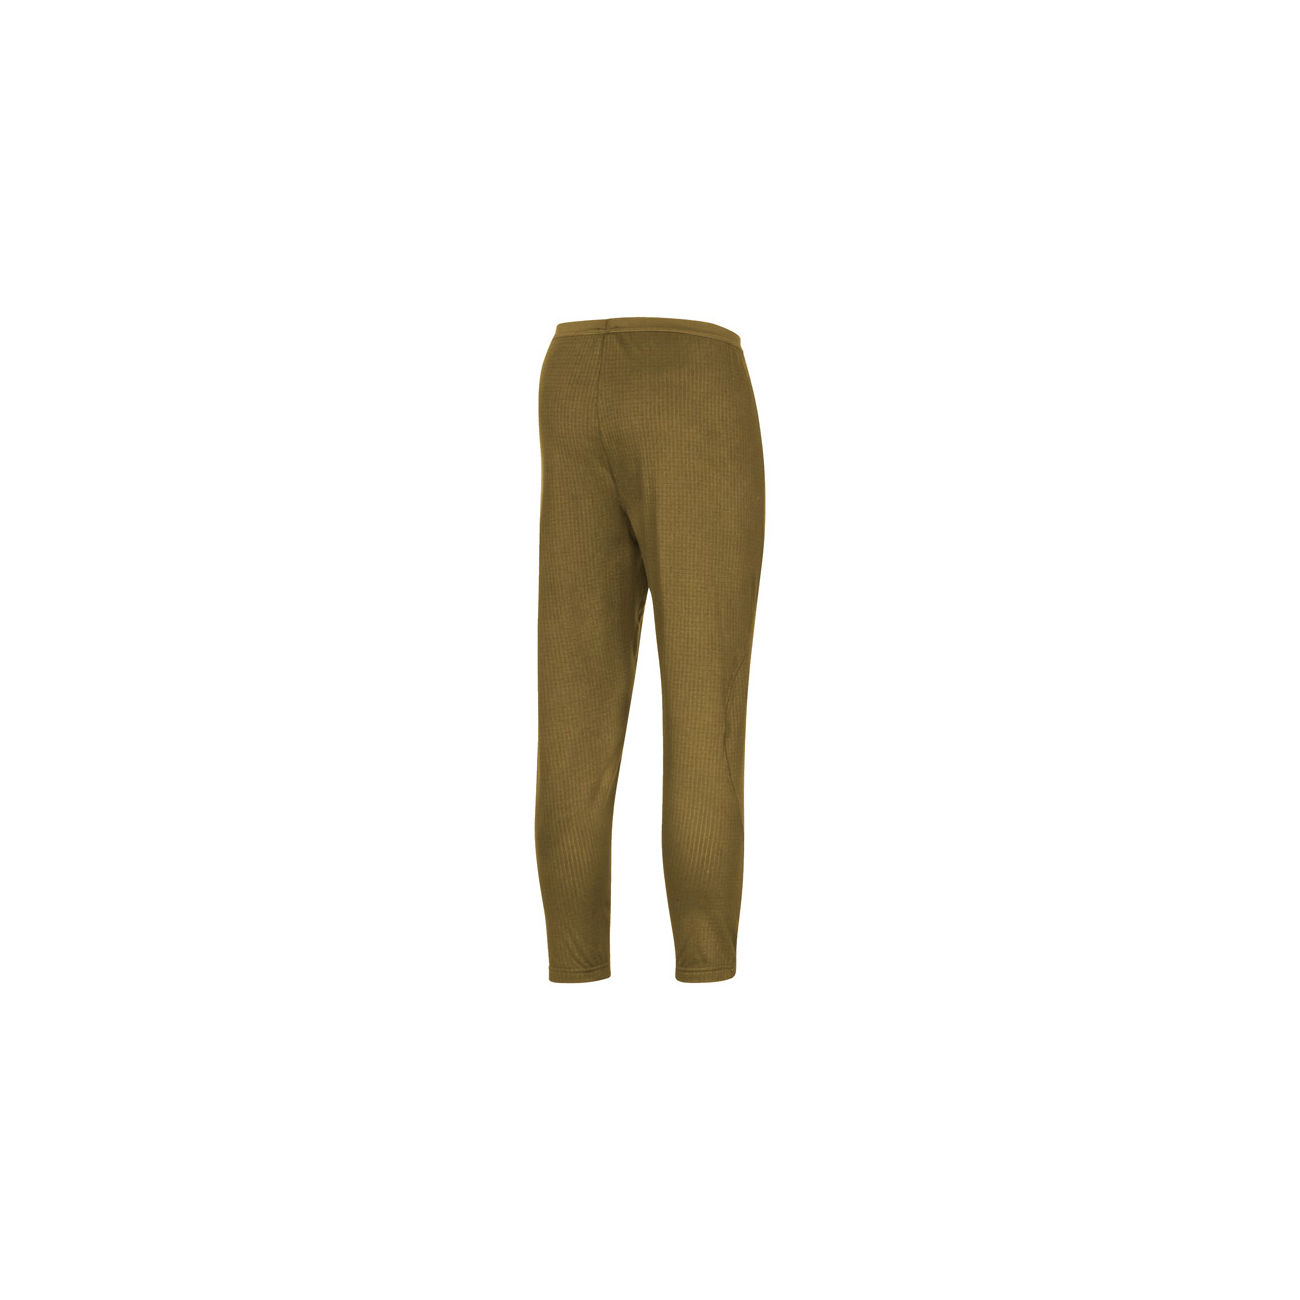 US Unterhose, Level 2, Gen III, Coyote Tan 1